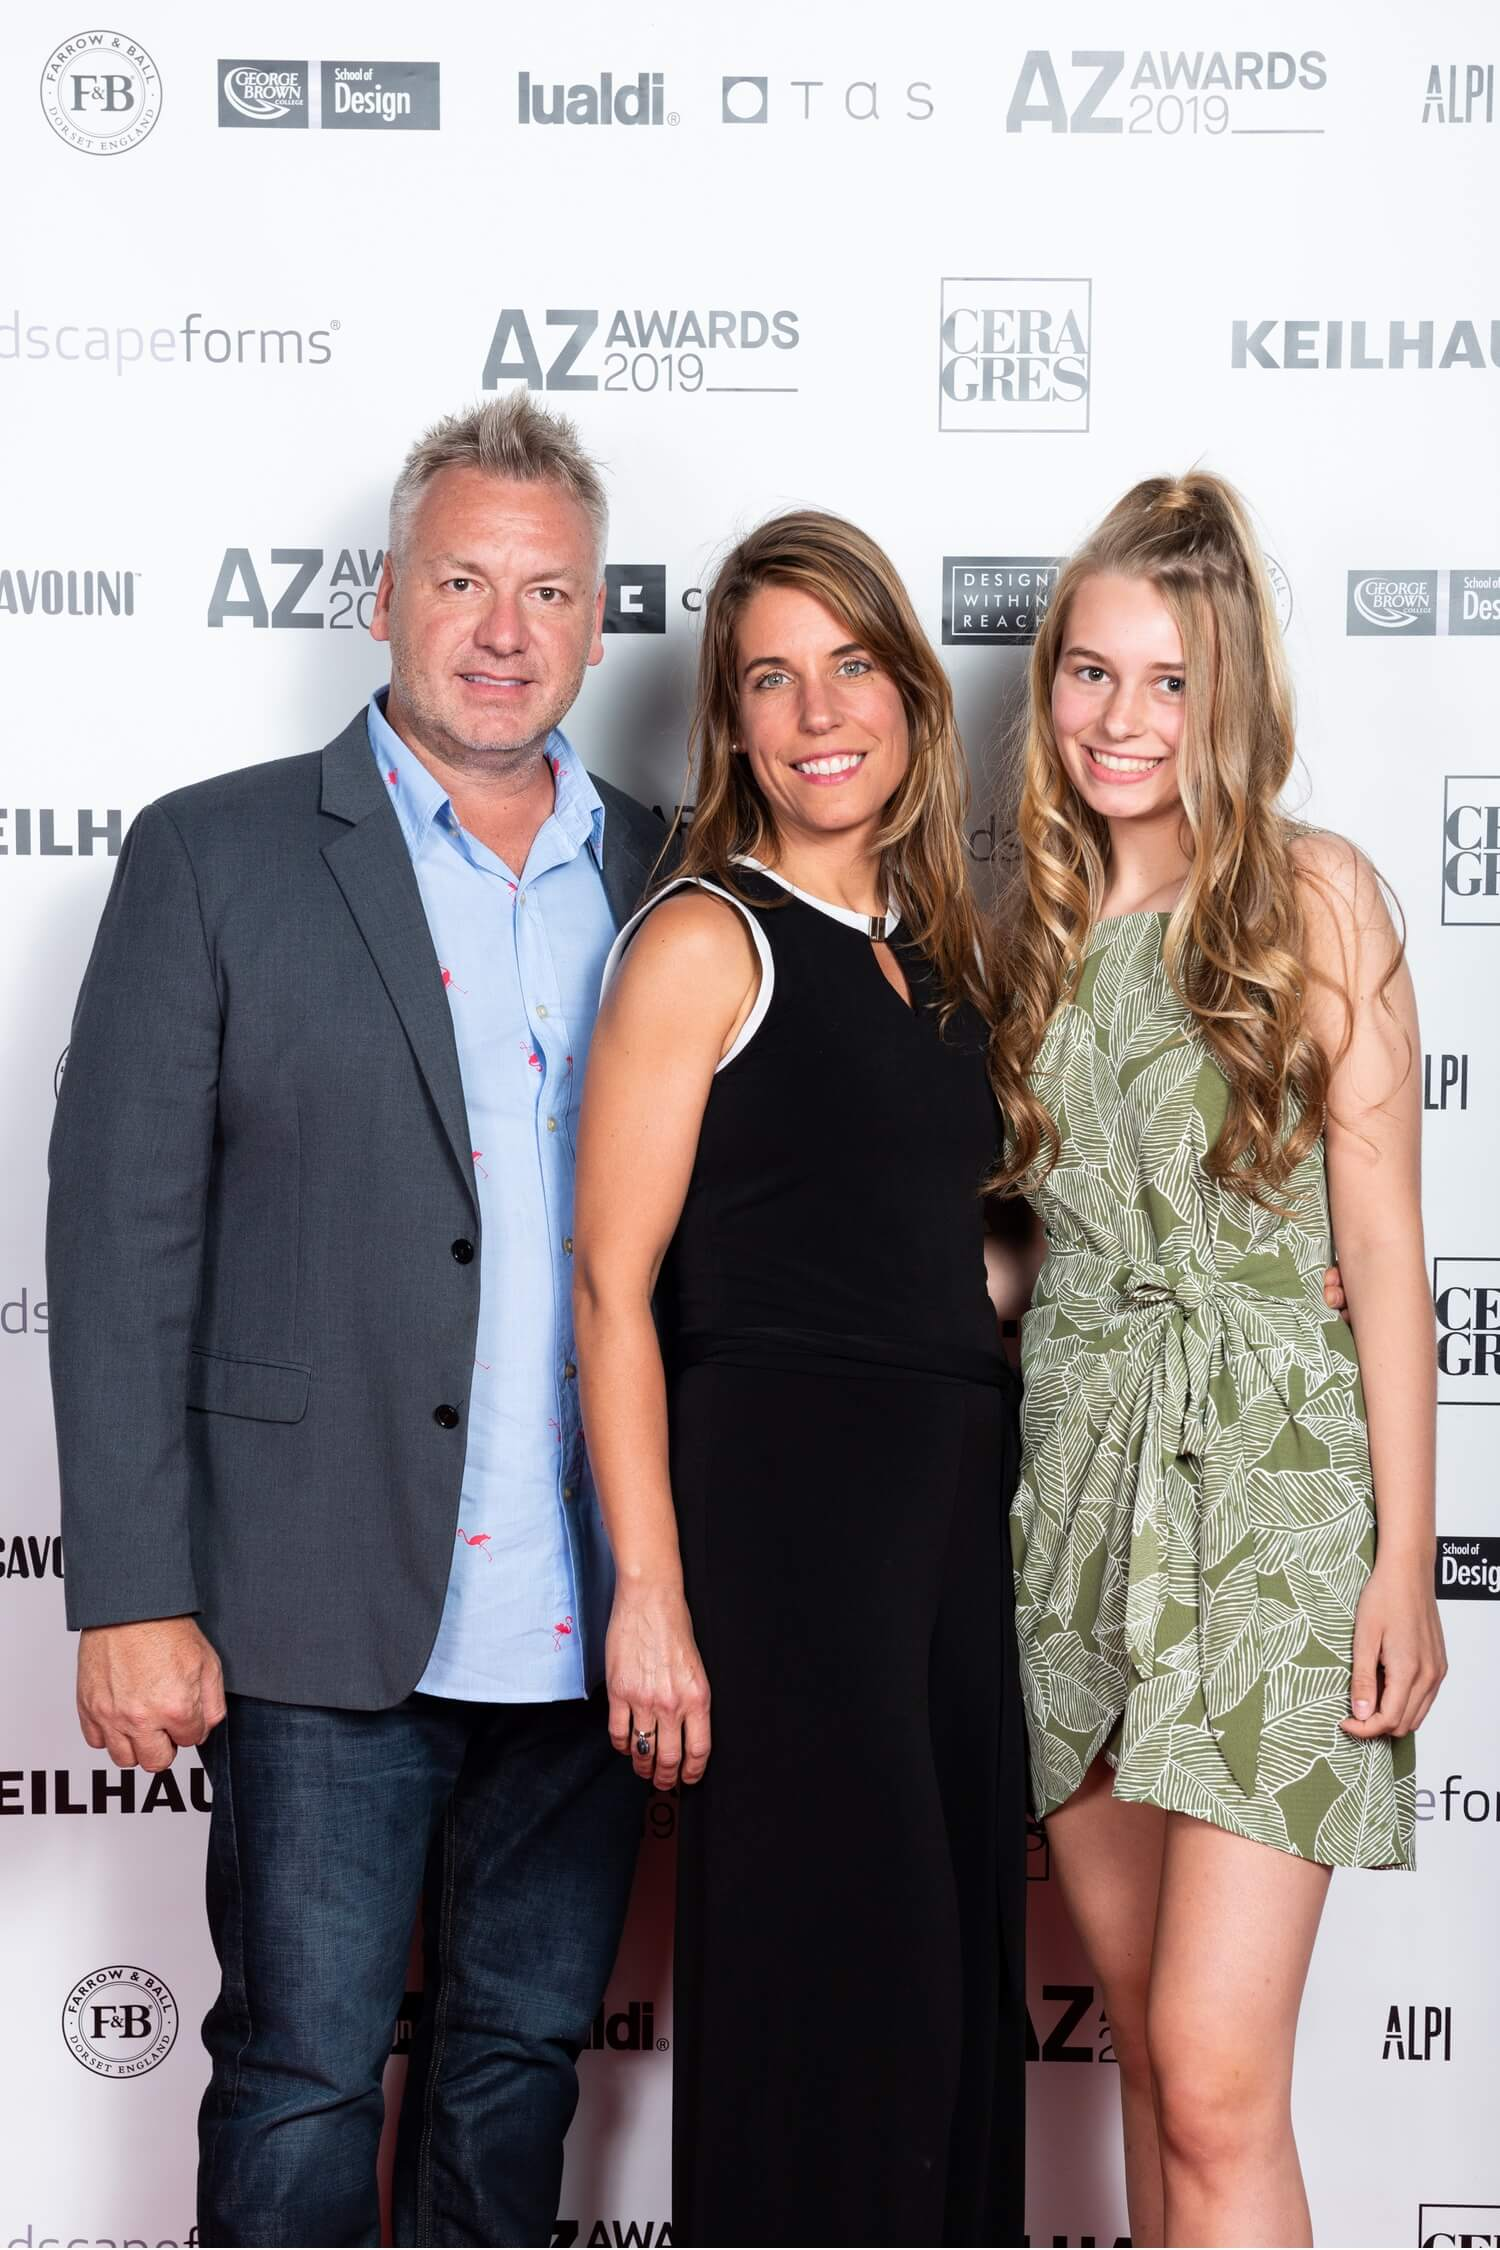 Kirt Martin, Chief Creative Officer at Landscape Forms, with wife Becky and daughter Sydney, AZ Awards 2019: Scenes from the Gala